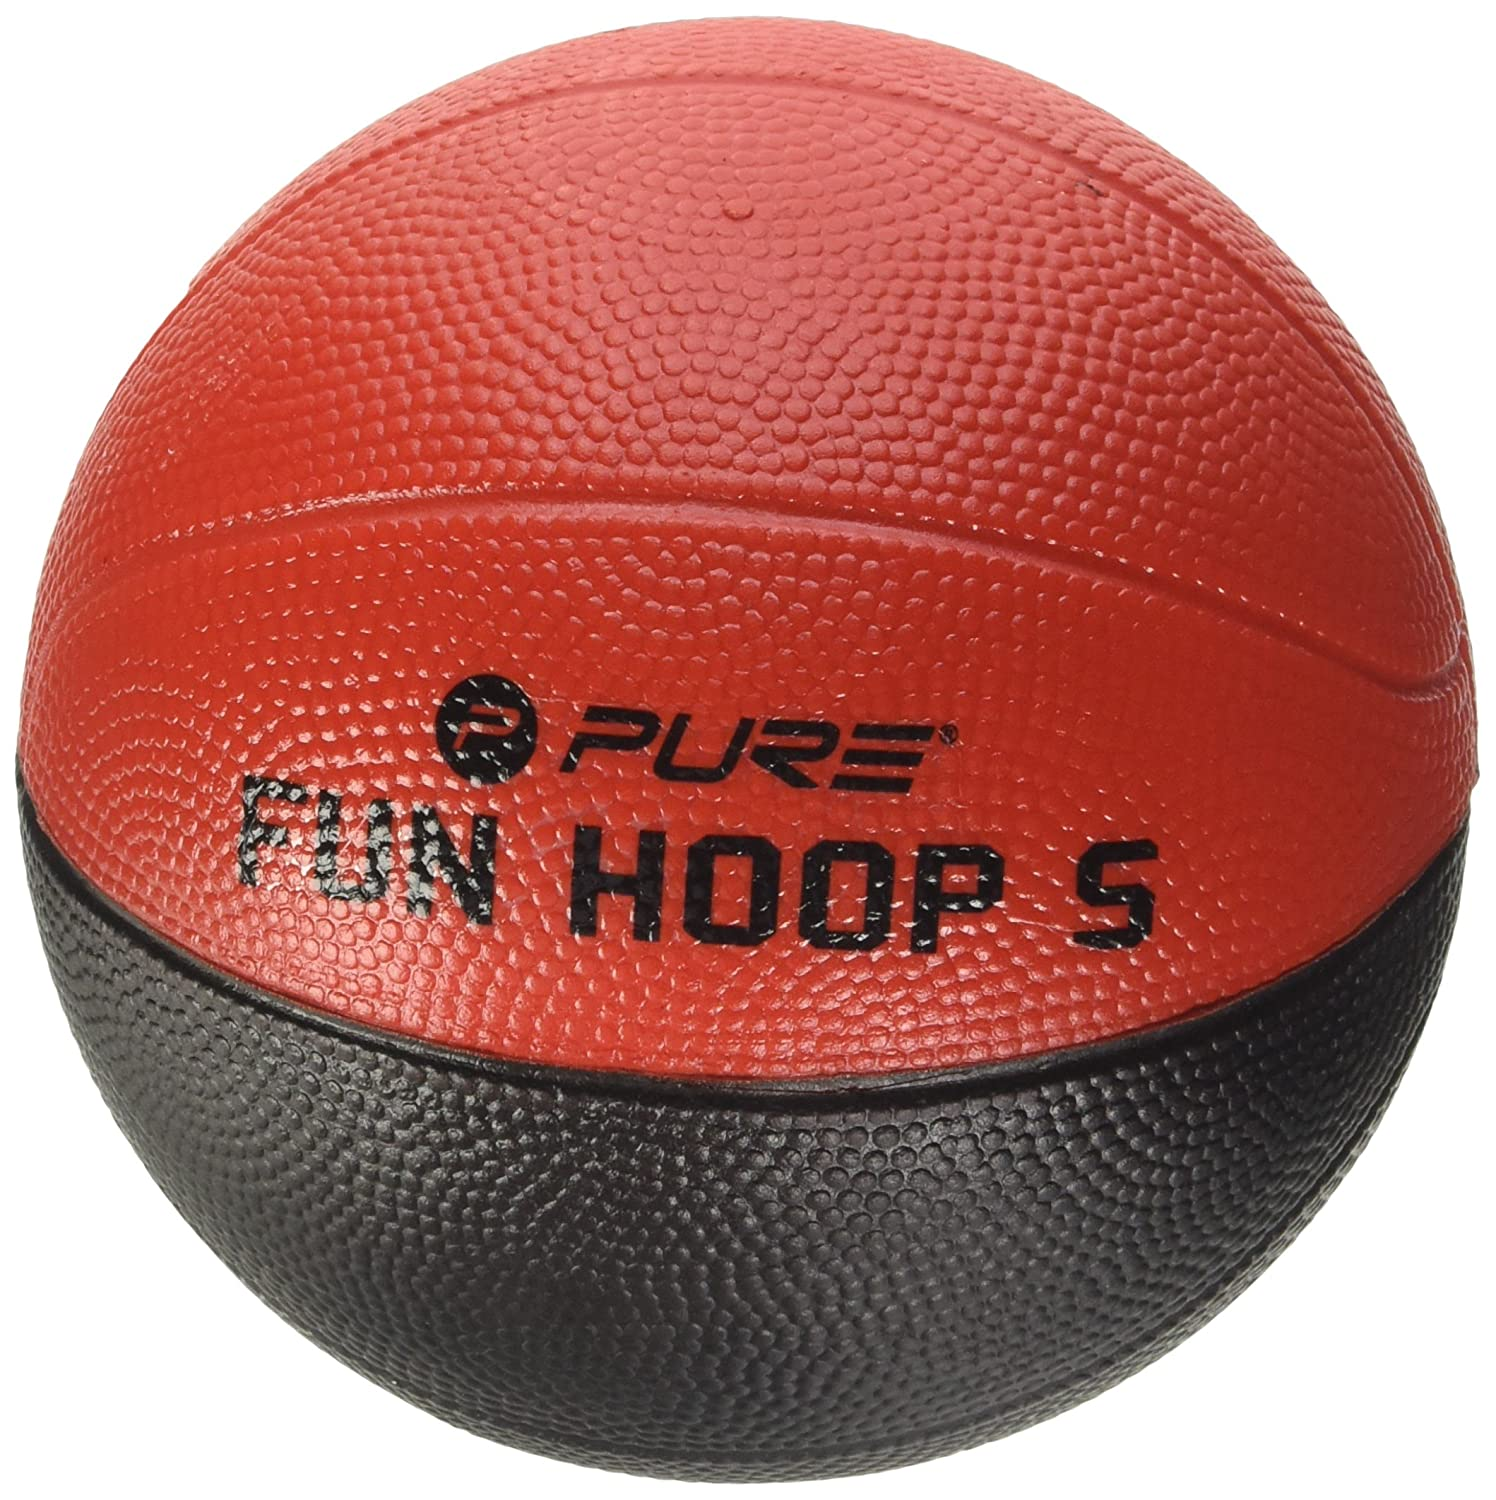 Pure2Improve Basketball 5.0 Schaumstoff, Schwarz/Orange, 13.8 cm PURG0|#Pure2Improve P2I100400